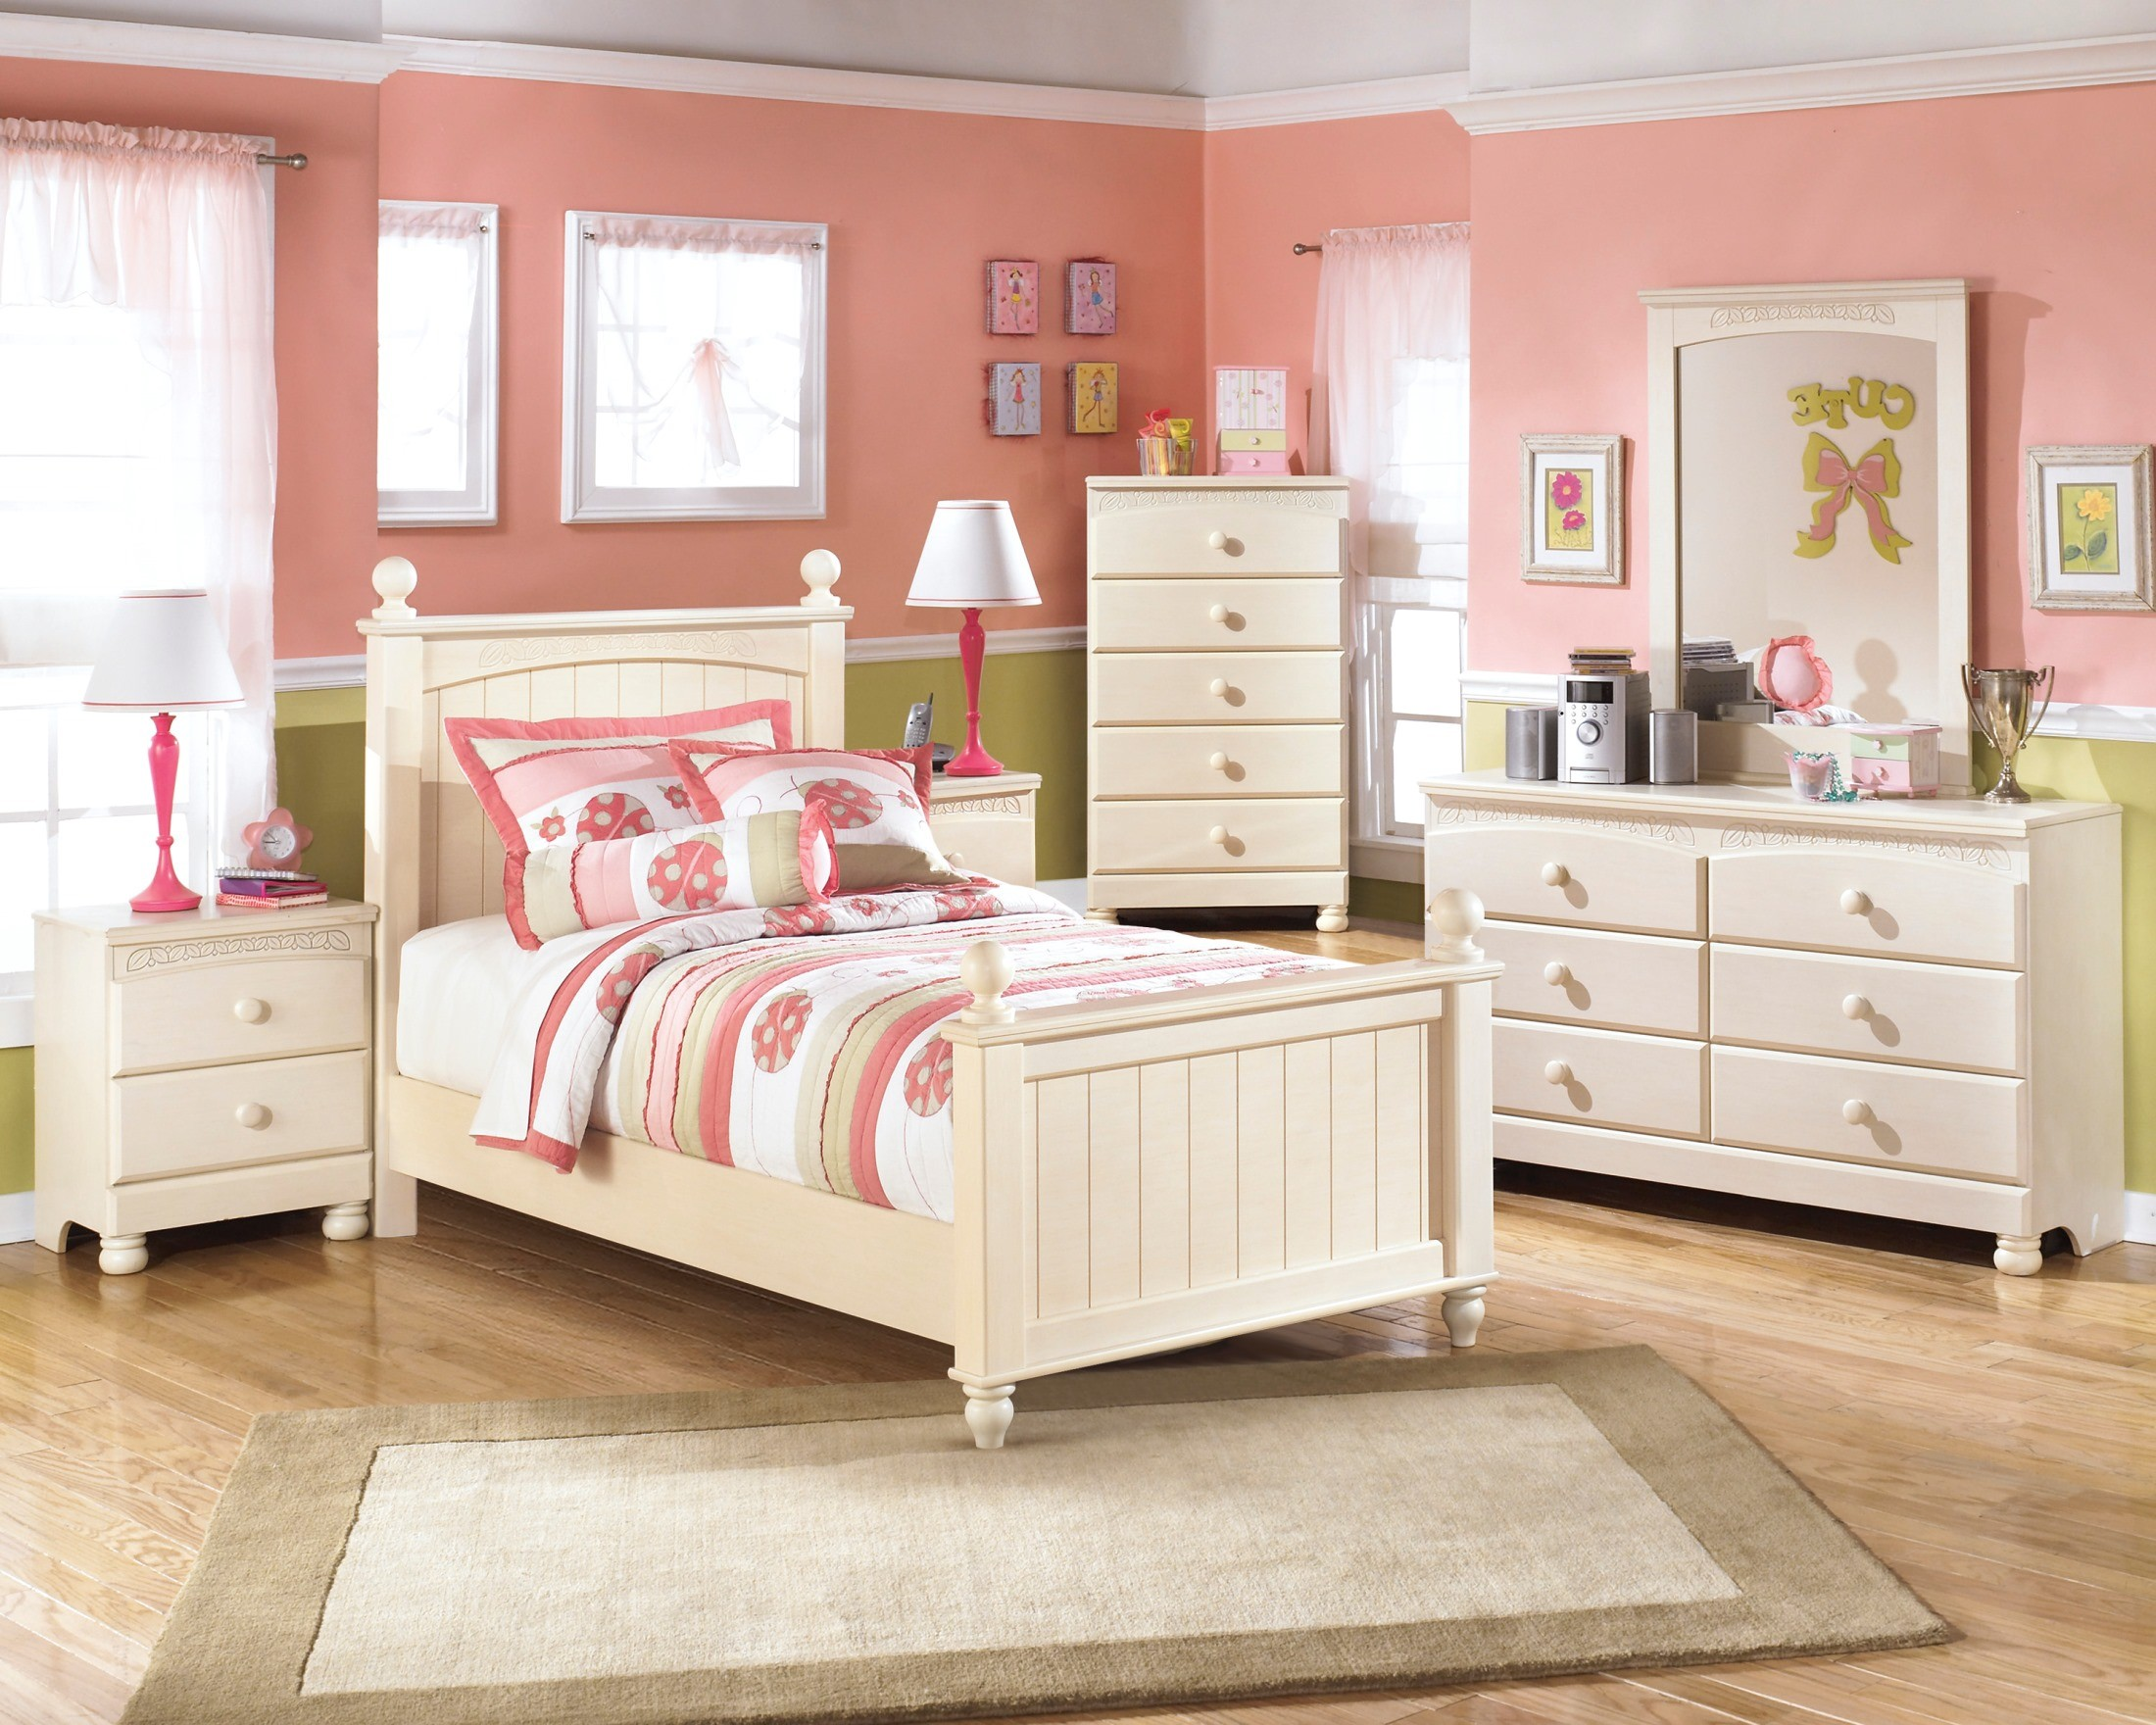 Cottage retreat twin poster bed from ashley b213 51n 52n for Cottage retreat ii